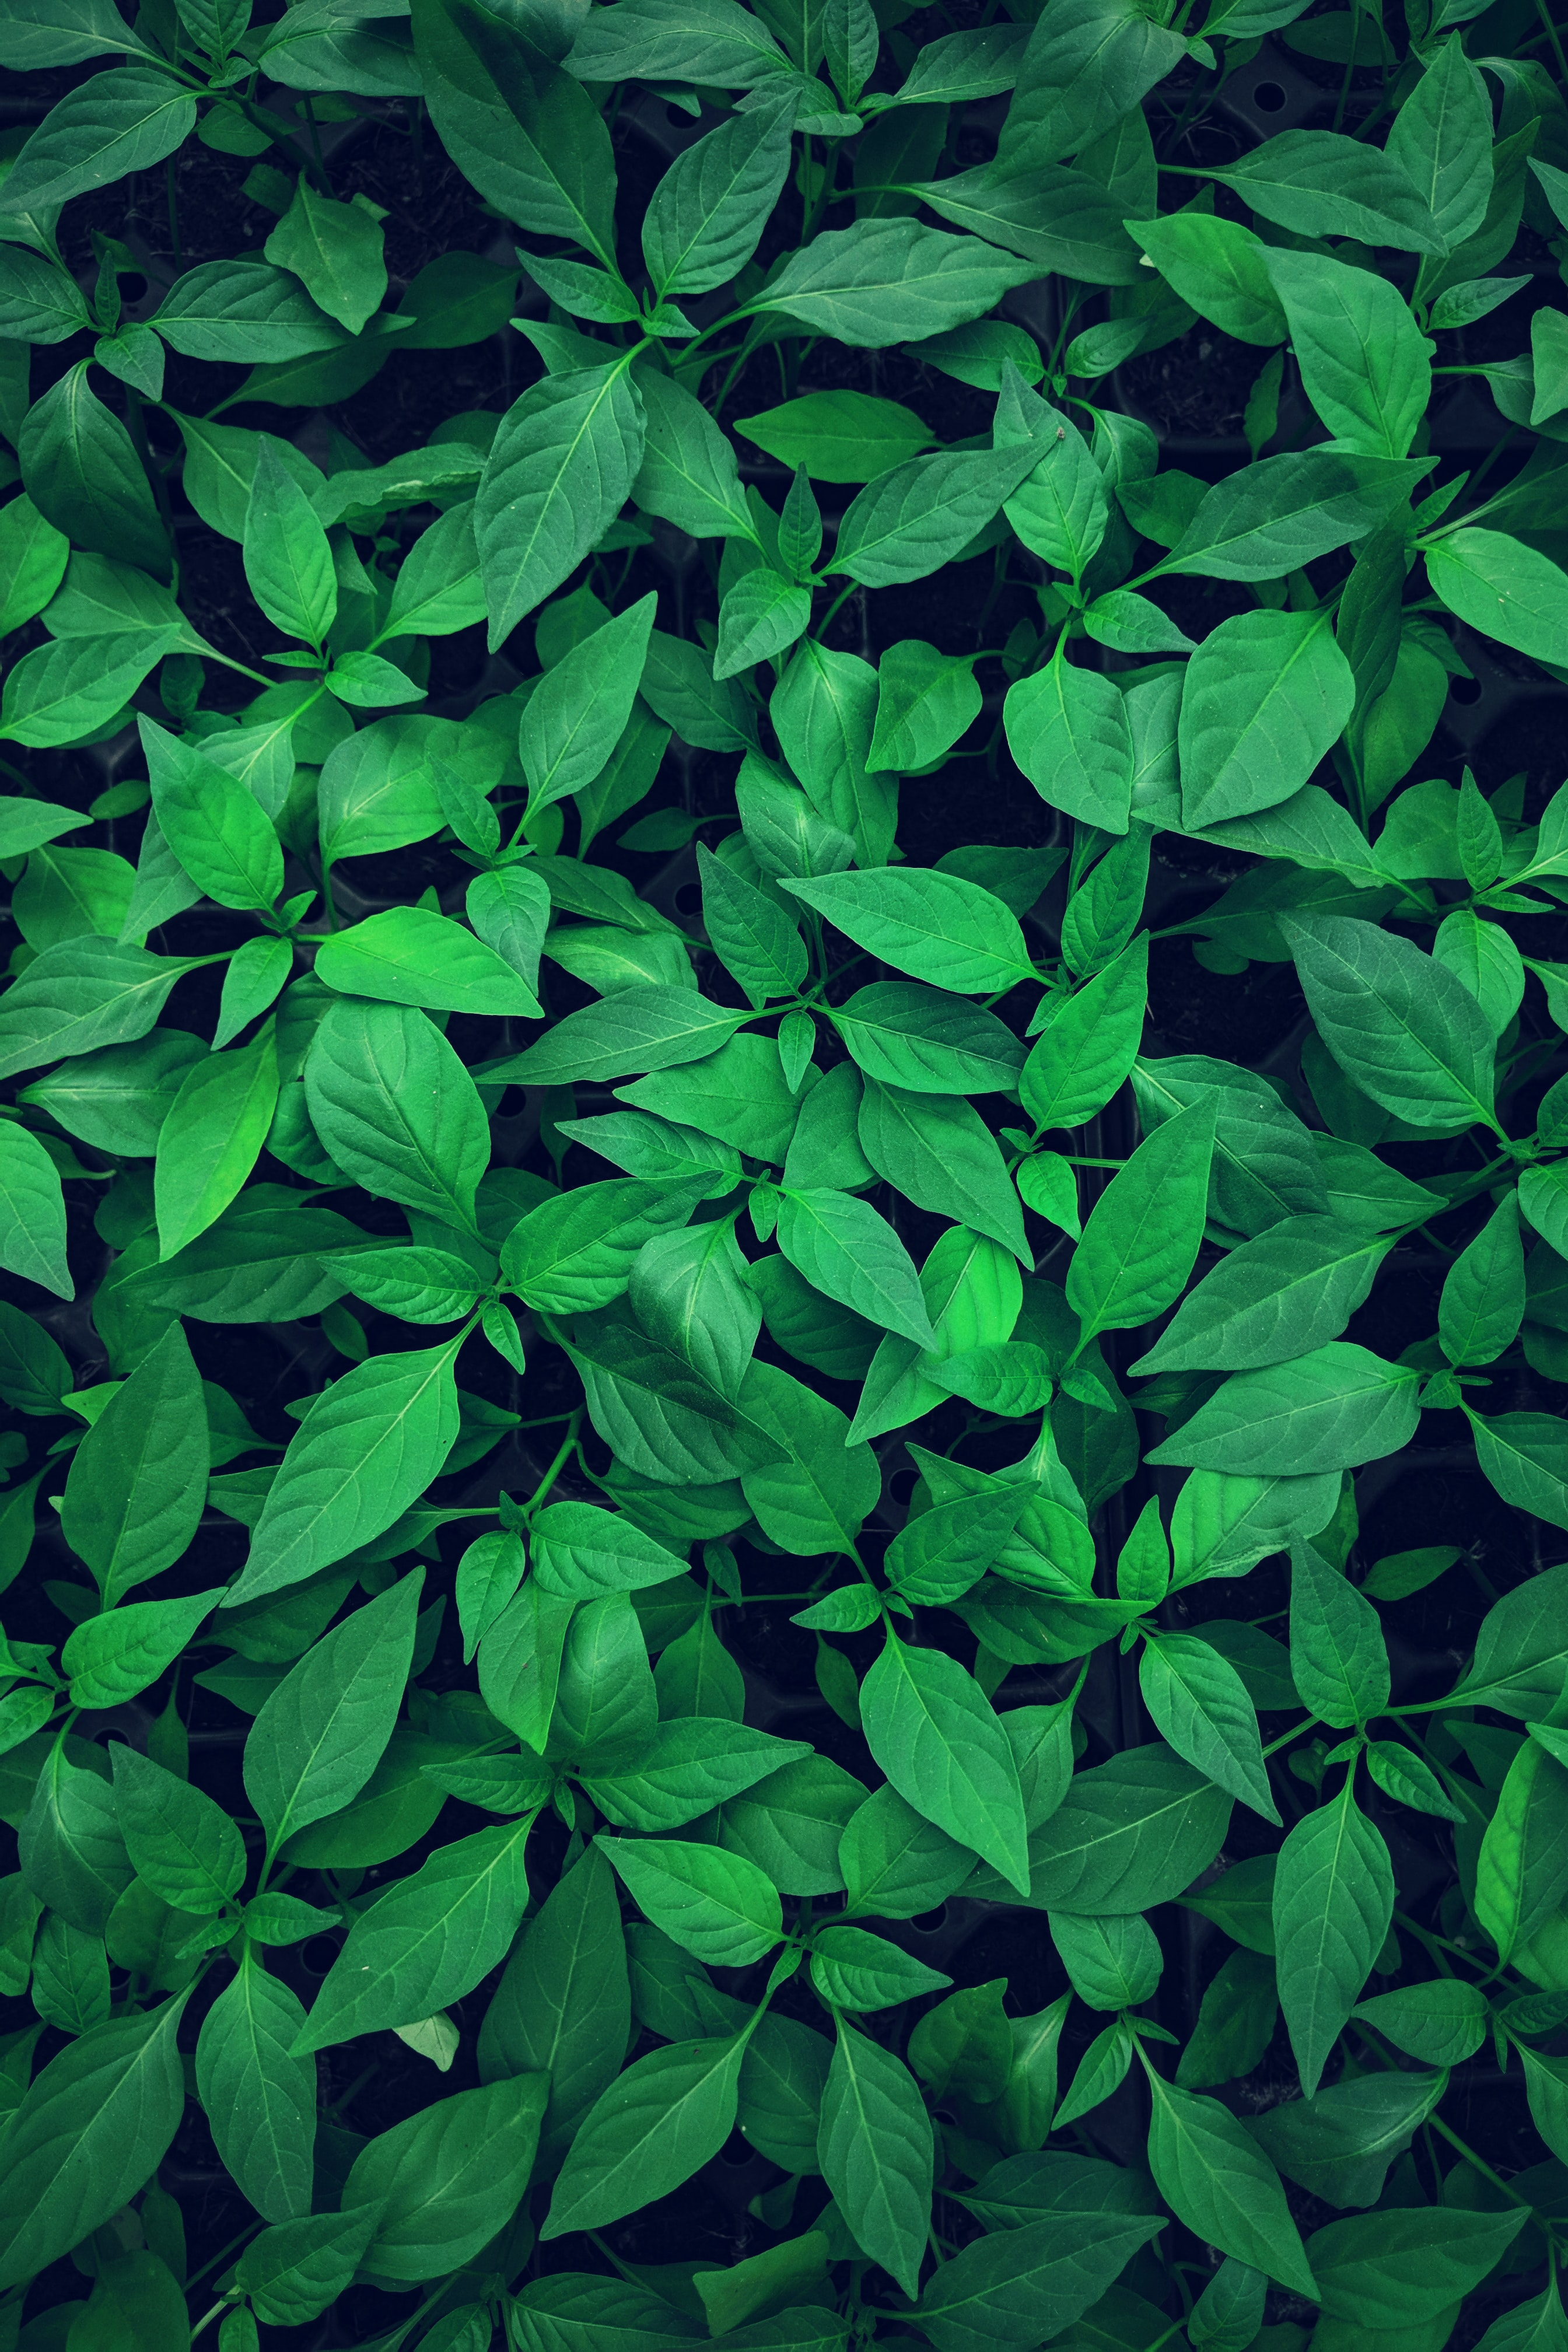 500 Green Plant Pictures Hd Download Free Images On Unsplash